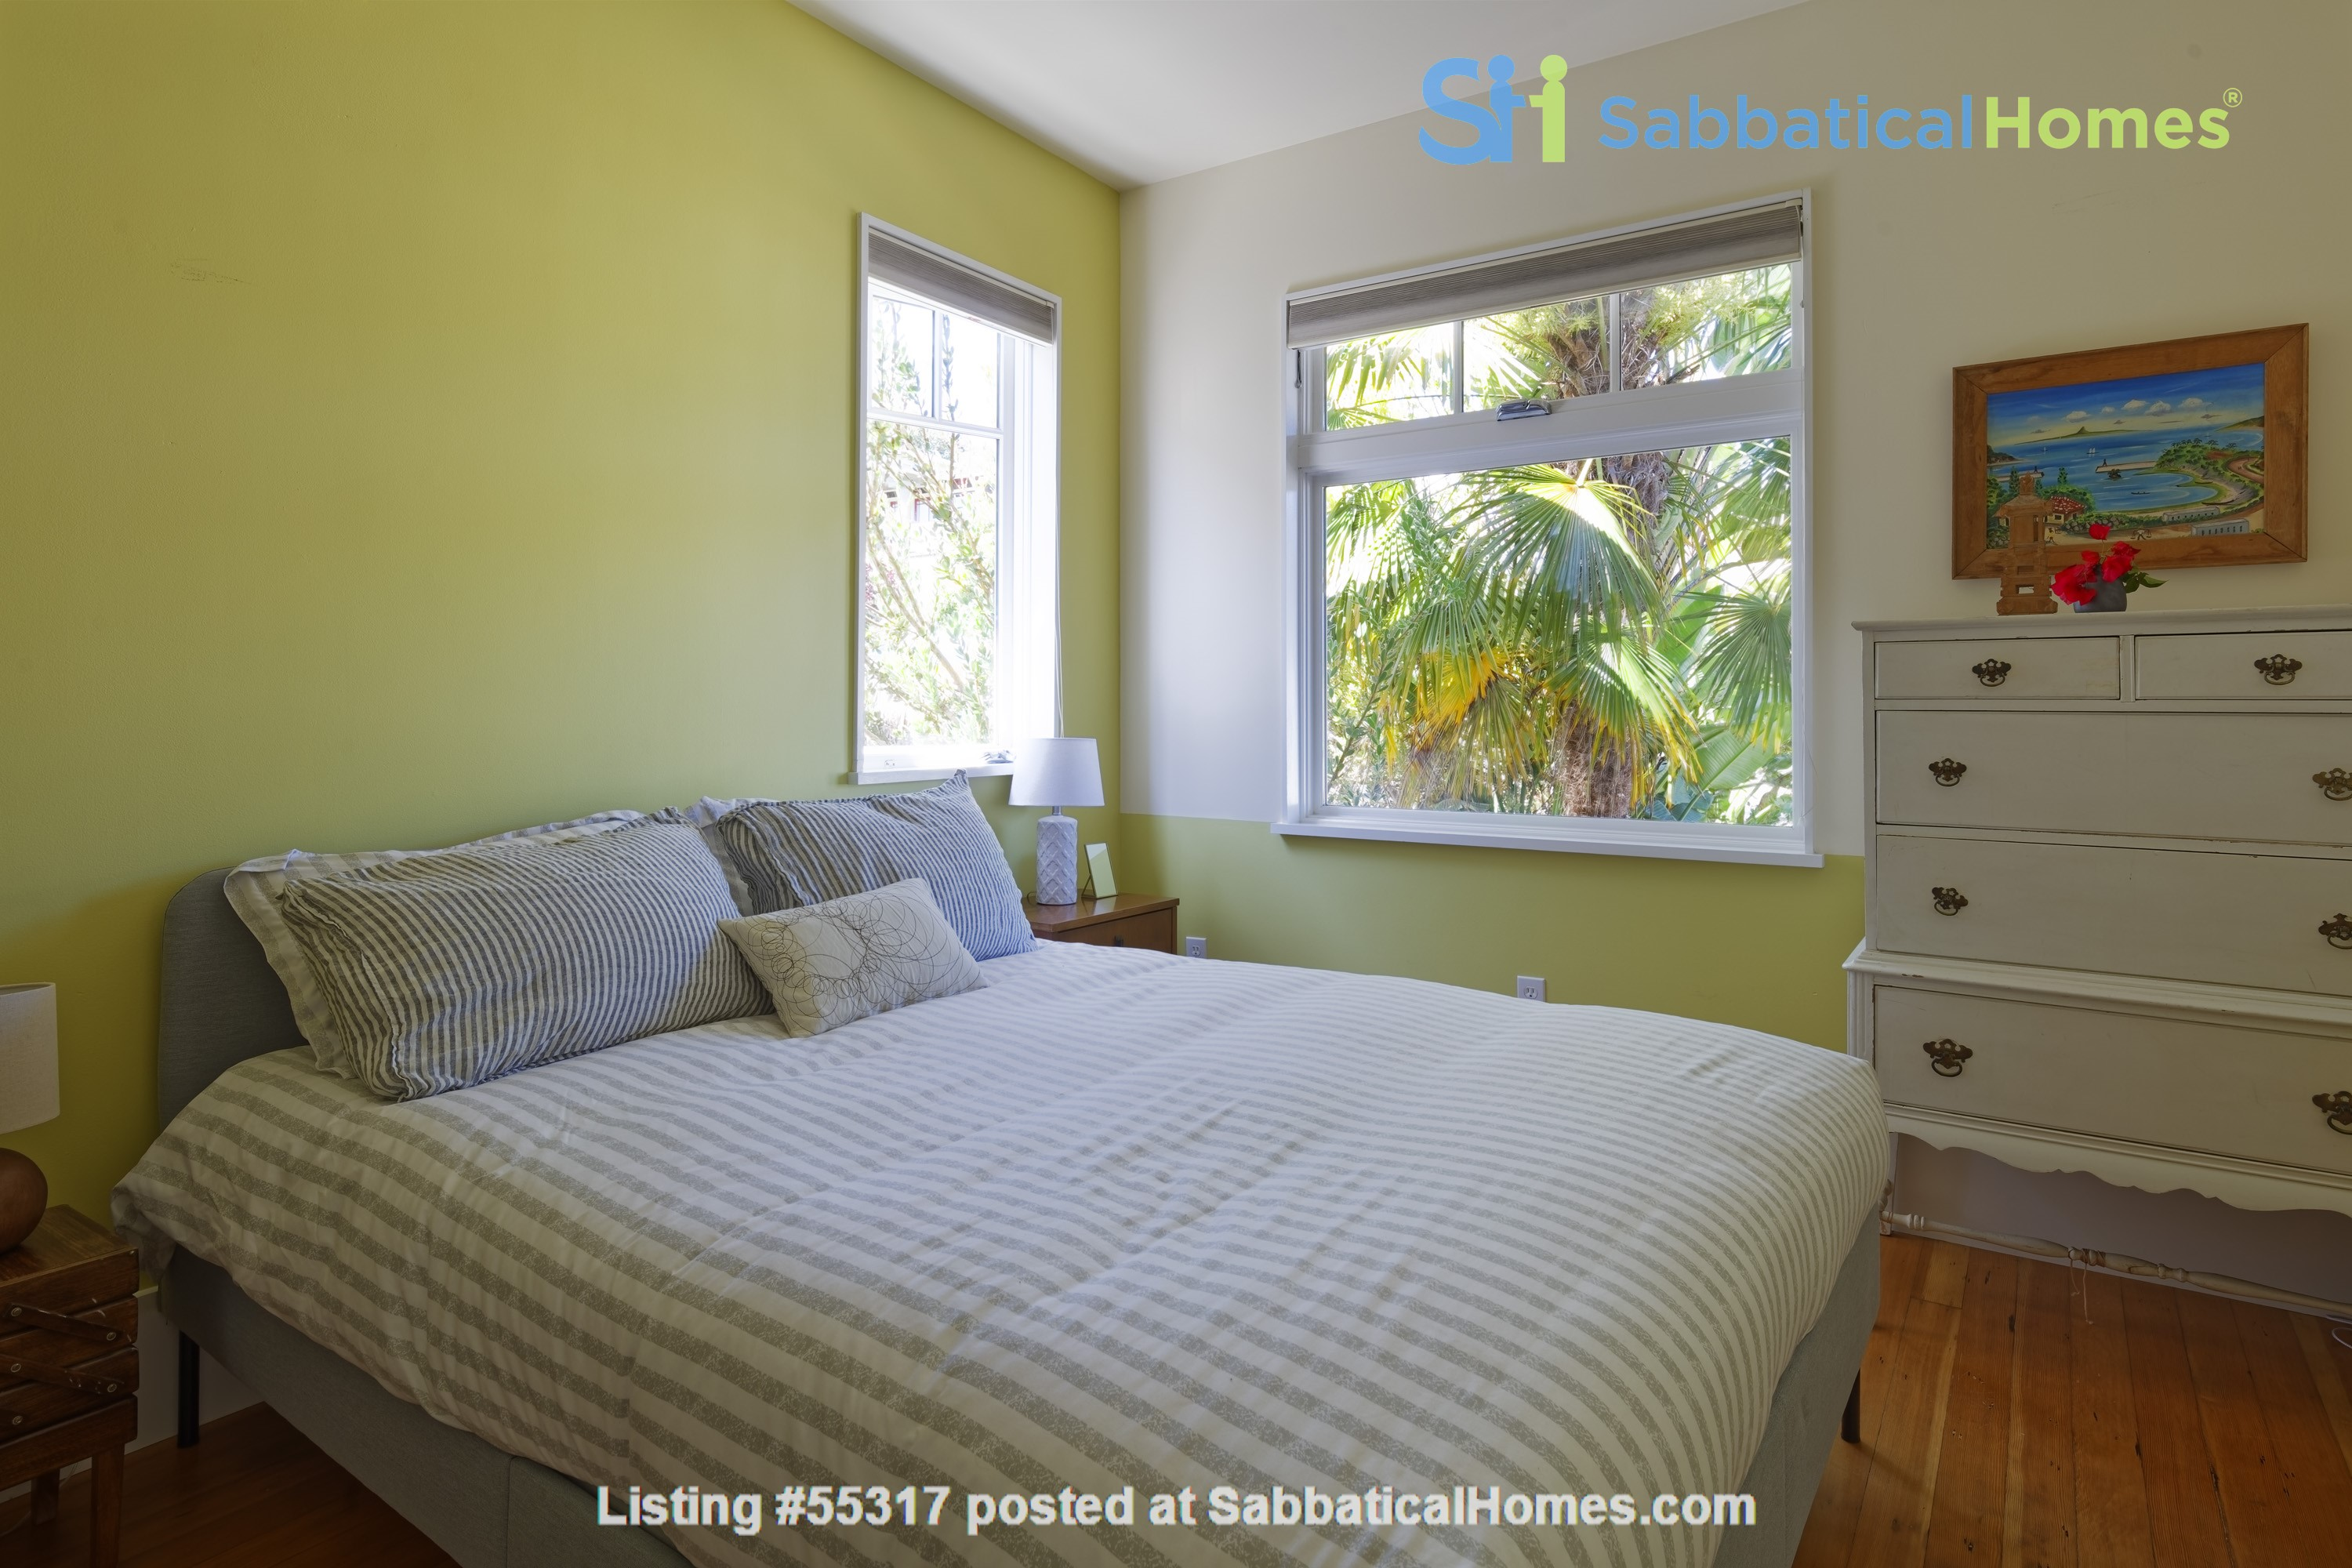 TROPICAL MODERN BUNGALOW- Oakland house near shops and hiking trails Home Rental in Oakland, California, United States 7